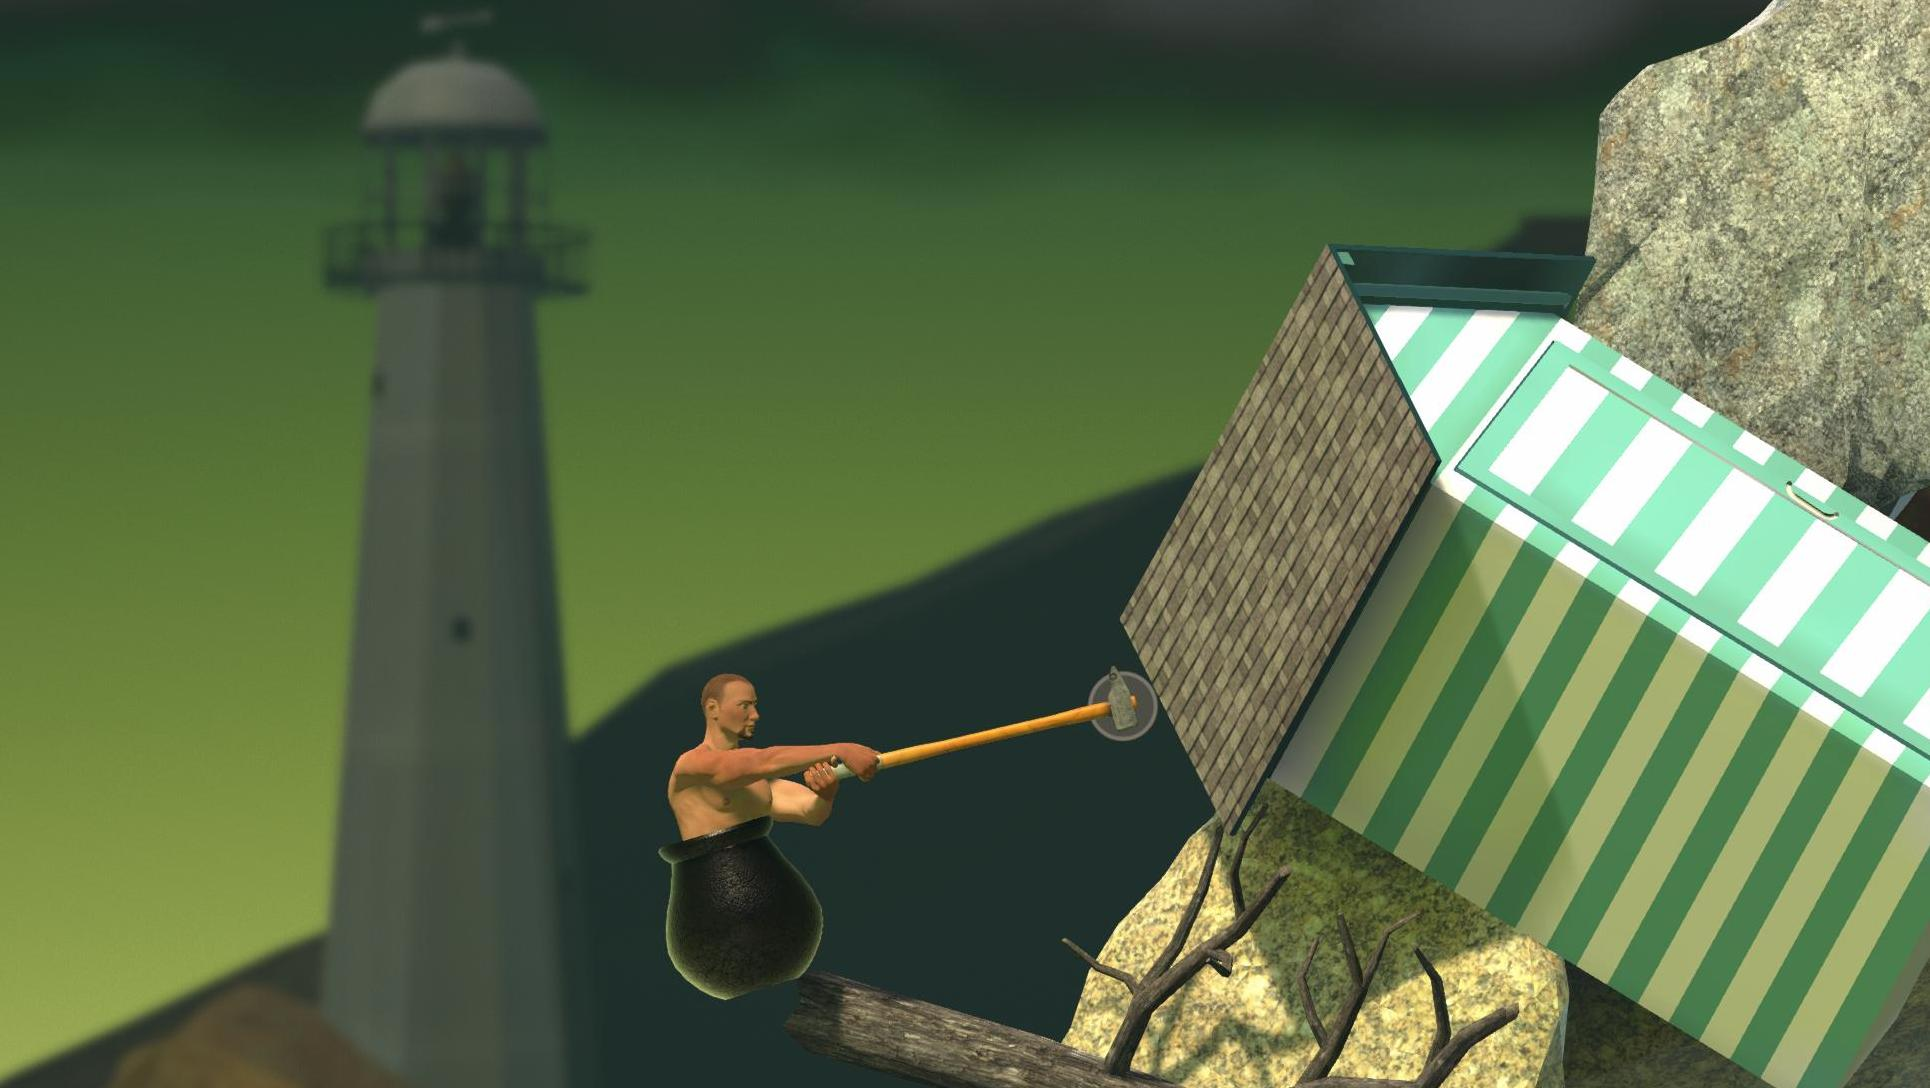 1514425580 getting over it with bennett foddy - Getting Over It With Bennett Foddy Mod Apk V1.9.3 (Unlocked)